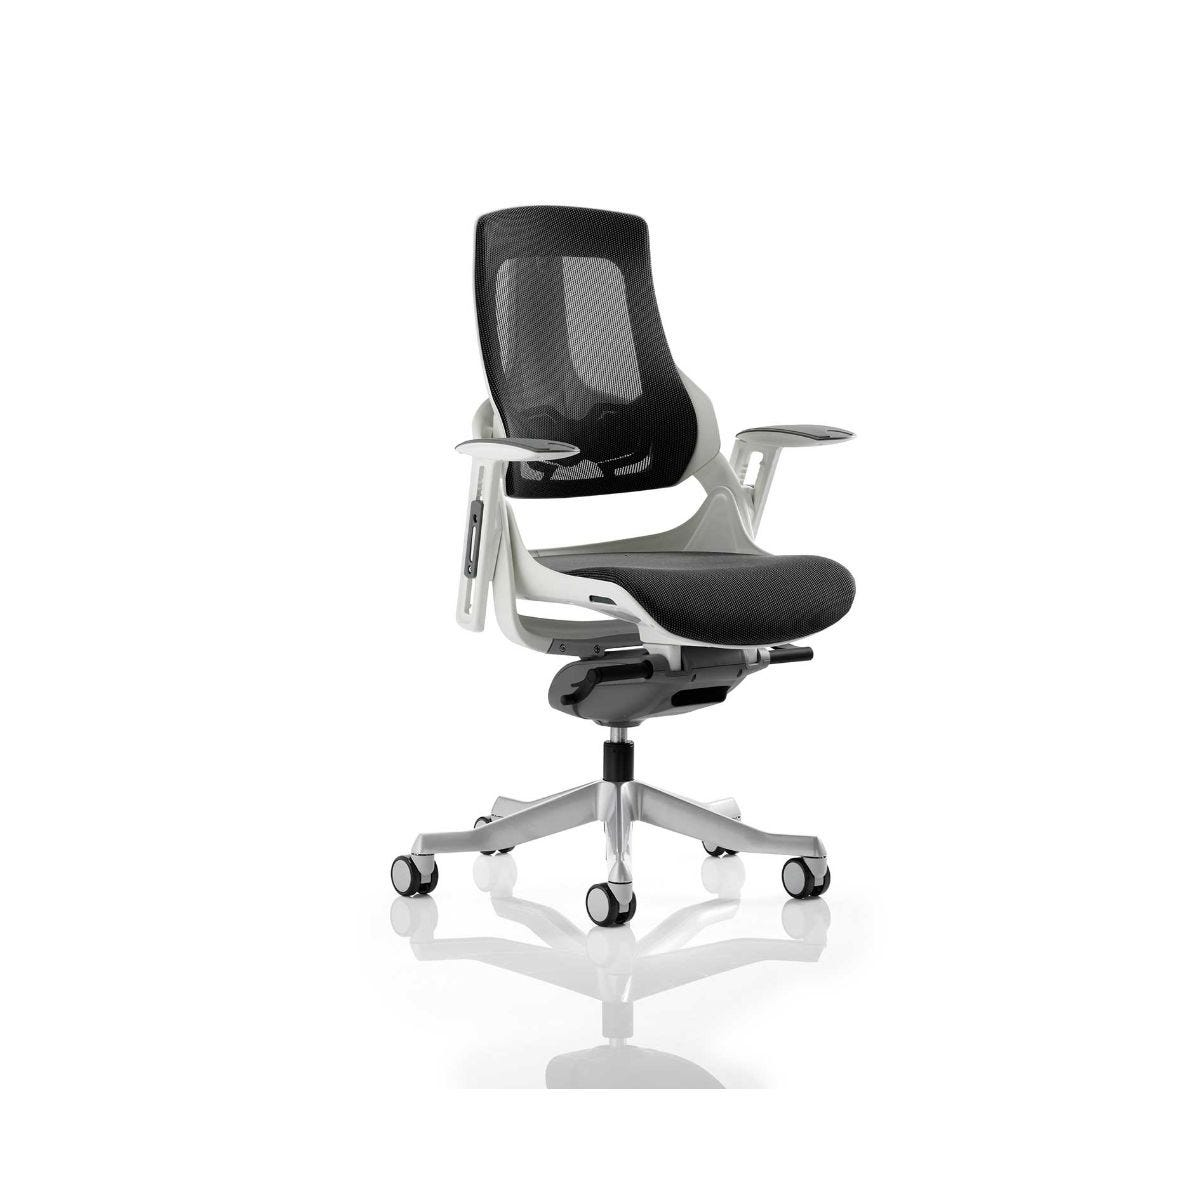 Zure Mesh Executive Office Chair, Black